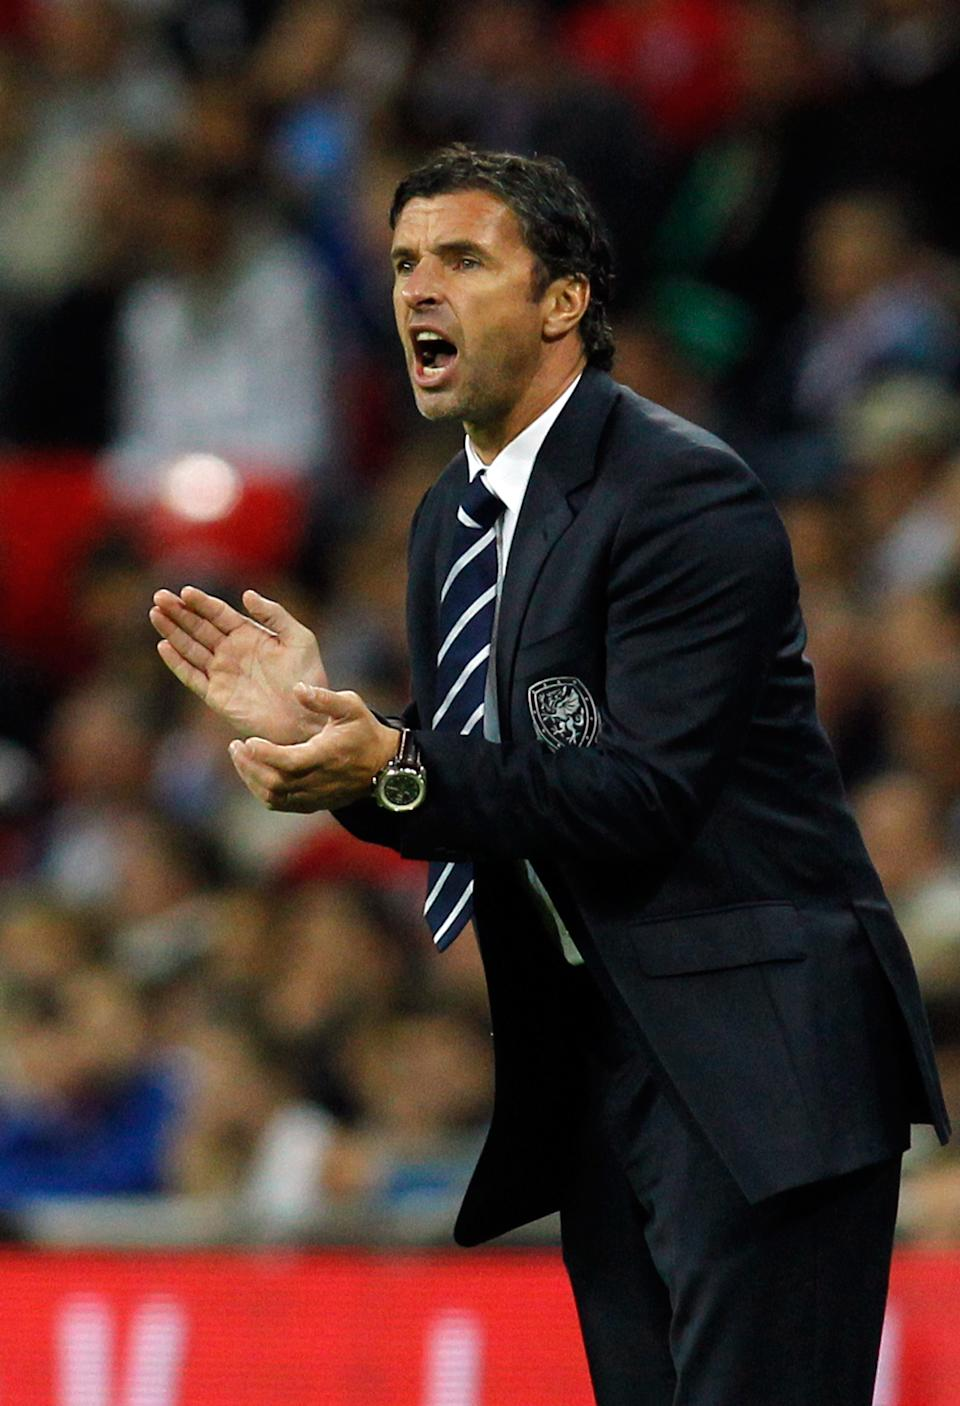 <strong>Gary Speed (8 September 1969 to 27 November 2011) </strong><br><br>Wales manager Gary Speed's death at the age of 42 was a shock to millions of football fans across the globe. <br><br>As a player, Speed set the First Division and Premier League alight during a glittering 22 year career. Making his debut for Leeds United aged 19, Speed became a key part of the team that won the First Division in 1992. He starred in an all-British midfield which included the likes of Gary McAllister, David Batty and Gordon Strachan as Leeds clinched their third top division title. Speed moved on to Everton in 1996 after making 248 league appearances for Leeds, a time in which he also cemented his place in the national team.<br><br>After two years with Everton, Speed moved to Newcastle – reaching two successive FA Cup finals in 1998 and 1999. Speed made a then-record 535 Premier League appearances as he concluded his career with spells at Bolton and Sheffield United. During that time he also set the record for most outfield international appearances for Wales as he was capped 85 times. <br><br>Making the move into management, Gary Speed took charge at Sheffield United but was later given the reins for the Welsh national team who he managed to turn around with a series of impressive wins, he was still in charge at the time of his death.